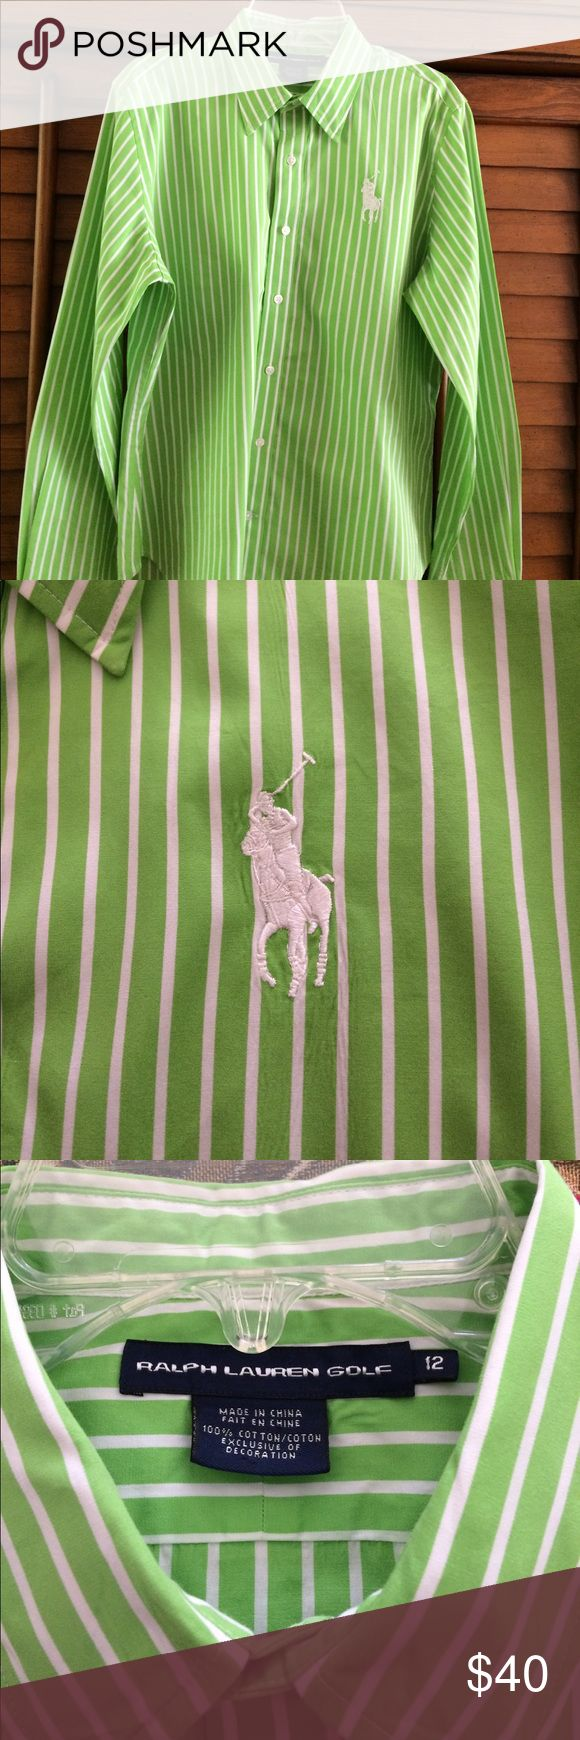 Ralph Lauren Big Pony Shirt. Really nice, lime green with white stripes. White embroidered Signature Big Pony and white embroidered RL on back collar. Great shirt. Ralph Lauren Golf Tops Button Down Shirts